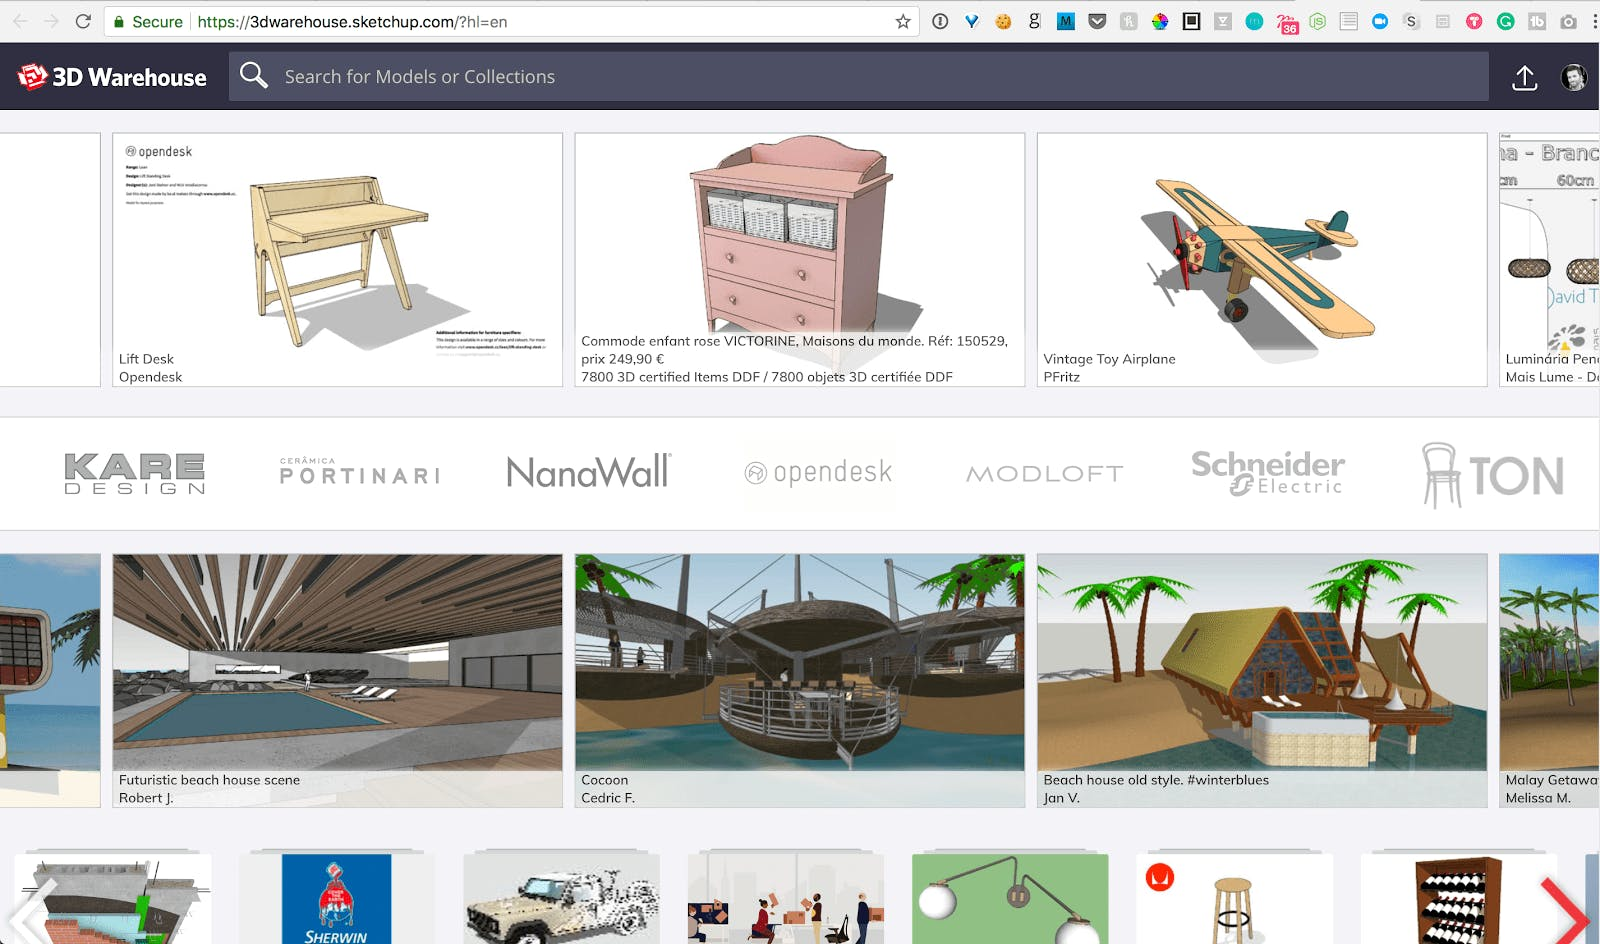 SketchUp: The Definitive Guide to Getting Started (2019